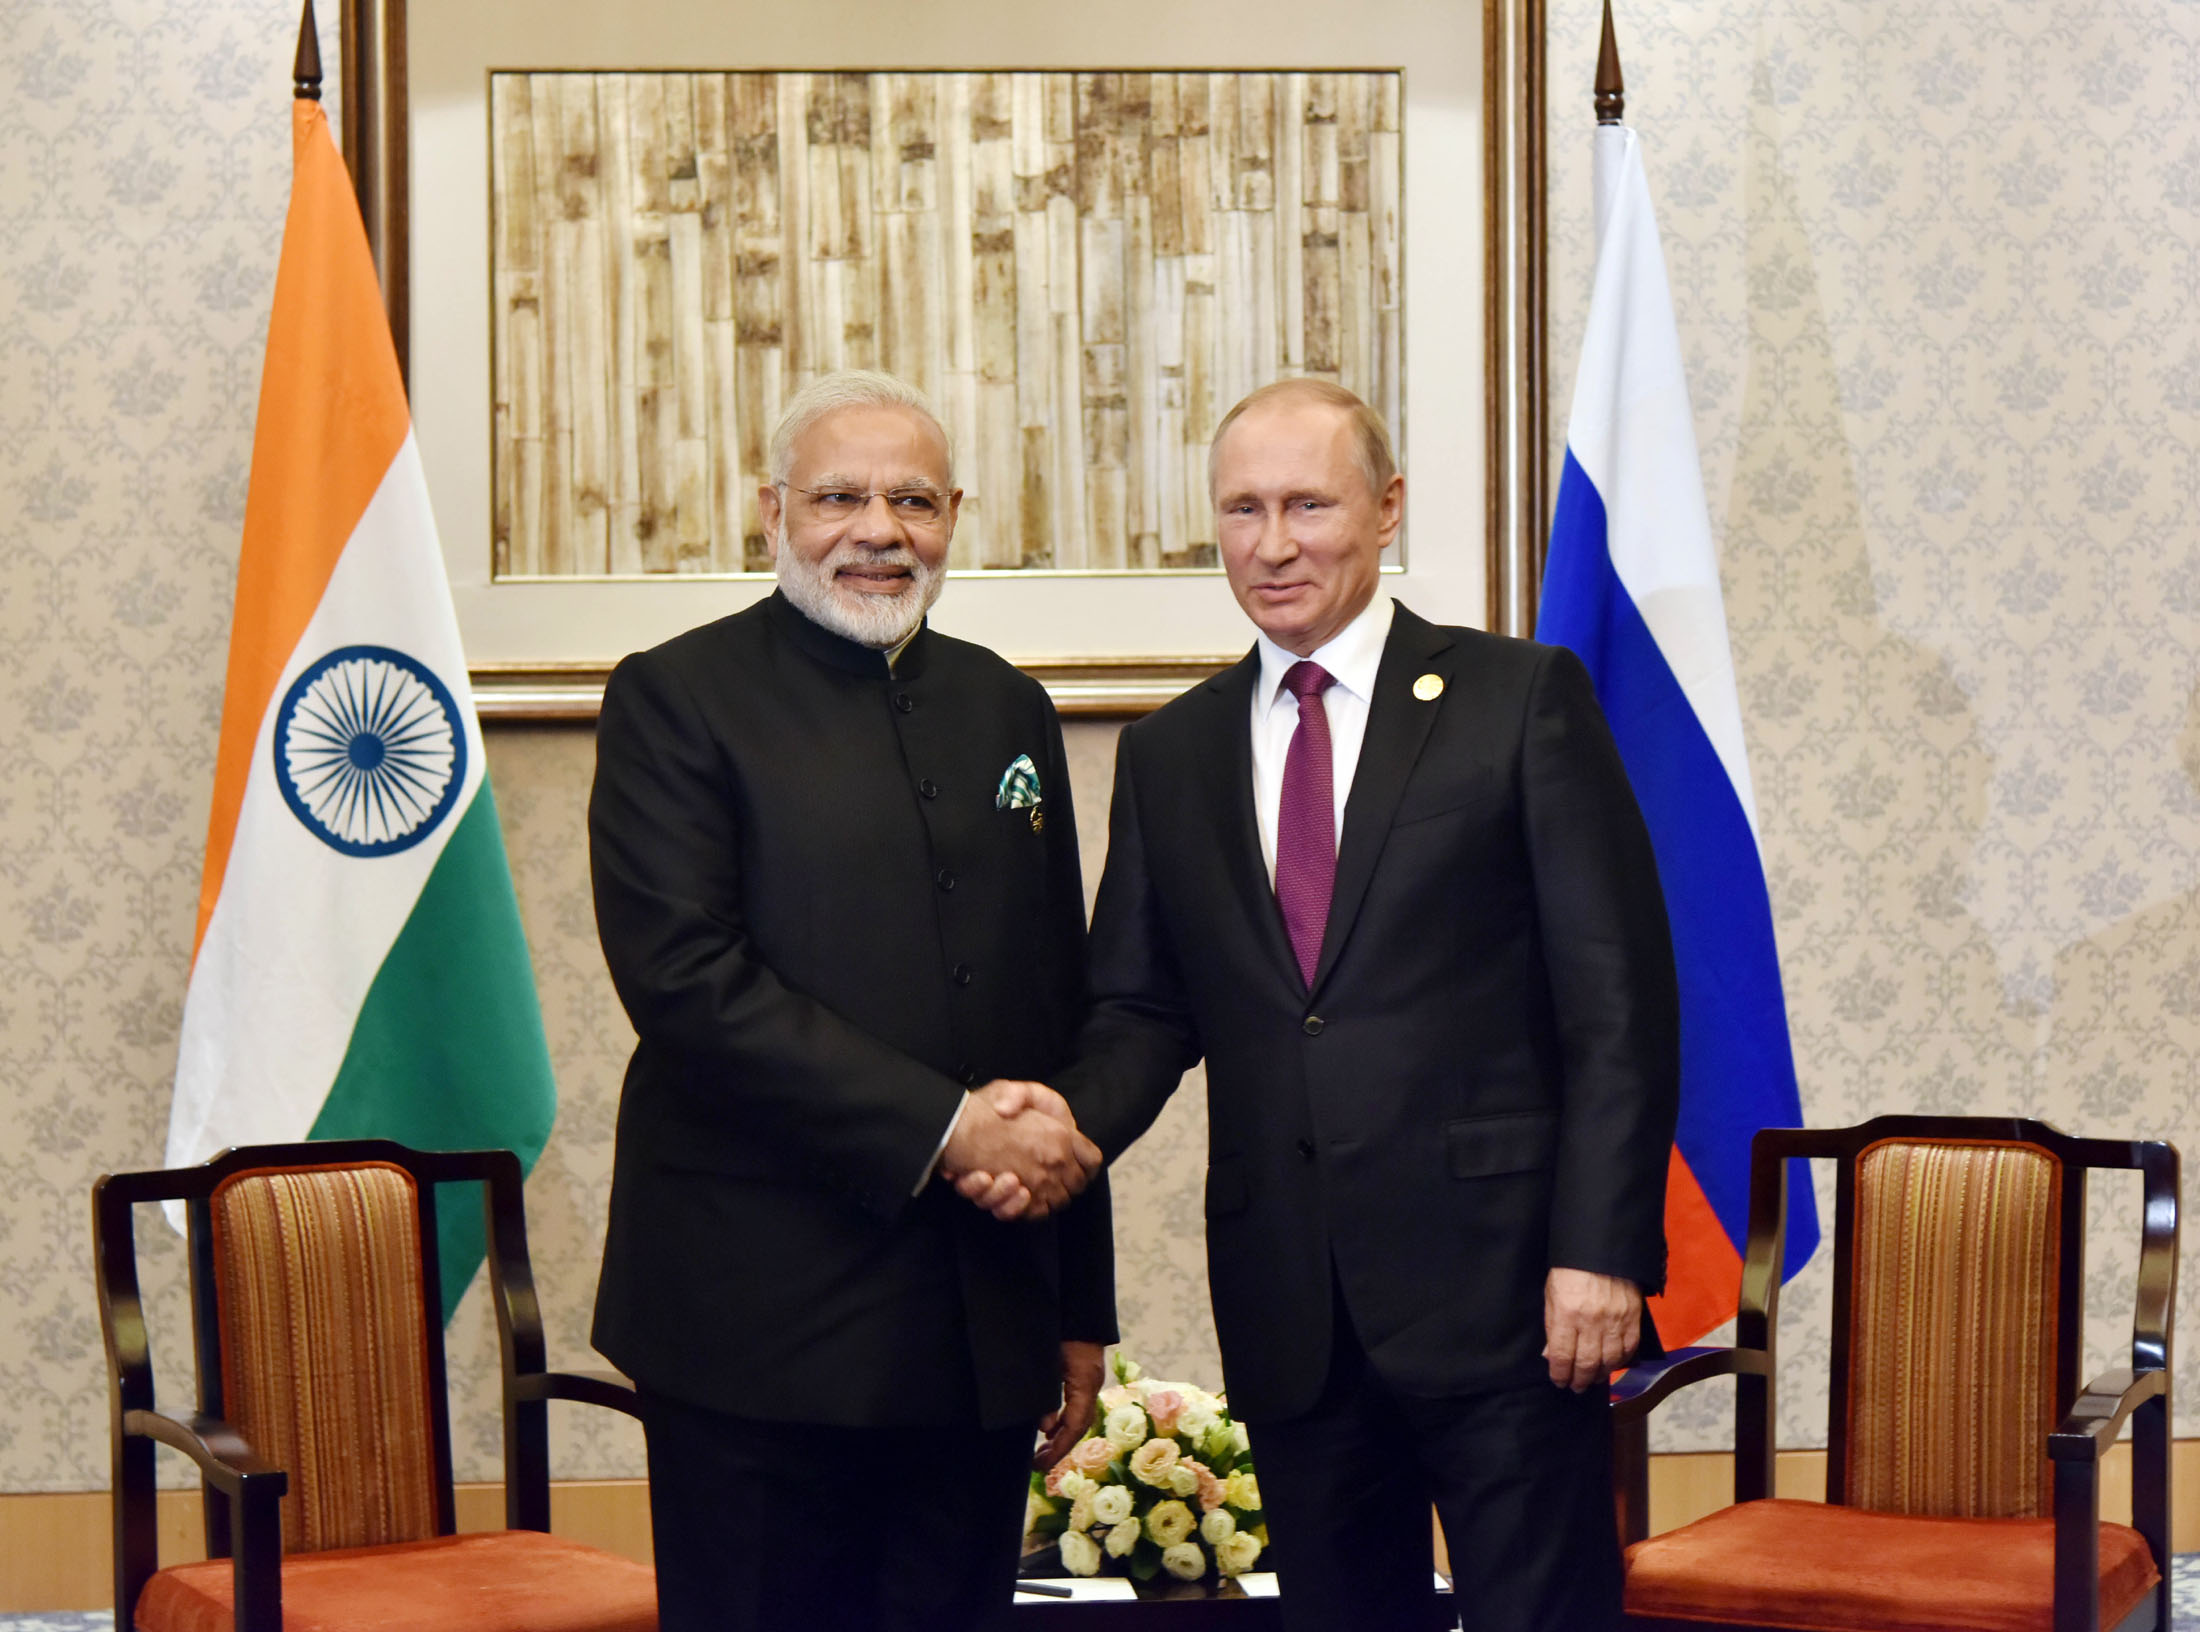 Prime Minister Narendra Modi meeting the President of Russian Federation Vladimir Putin on the sidelines of the 9th BRICS Summit, in Xiamen